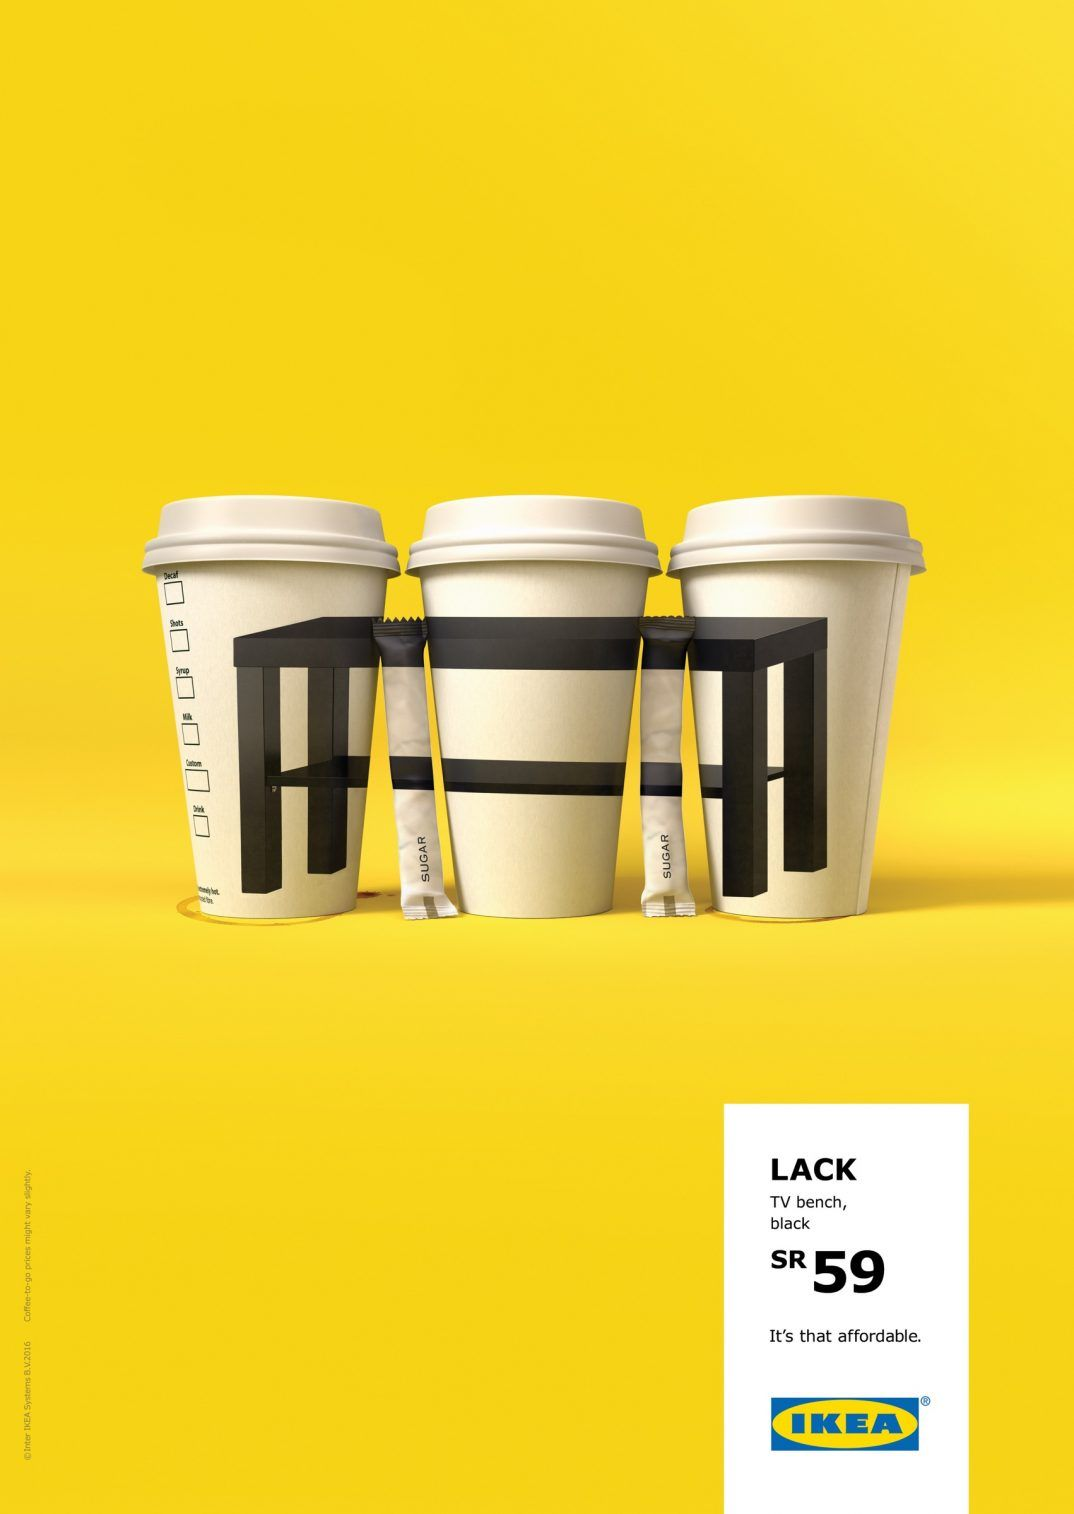 Ikea Displaying How Affordable The Product Is By Ogilvy Mather Uae Ikea Ad Ikea Ikea New [ 1514 x 1074 Pixel ]